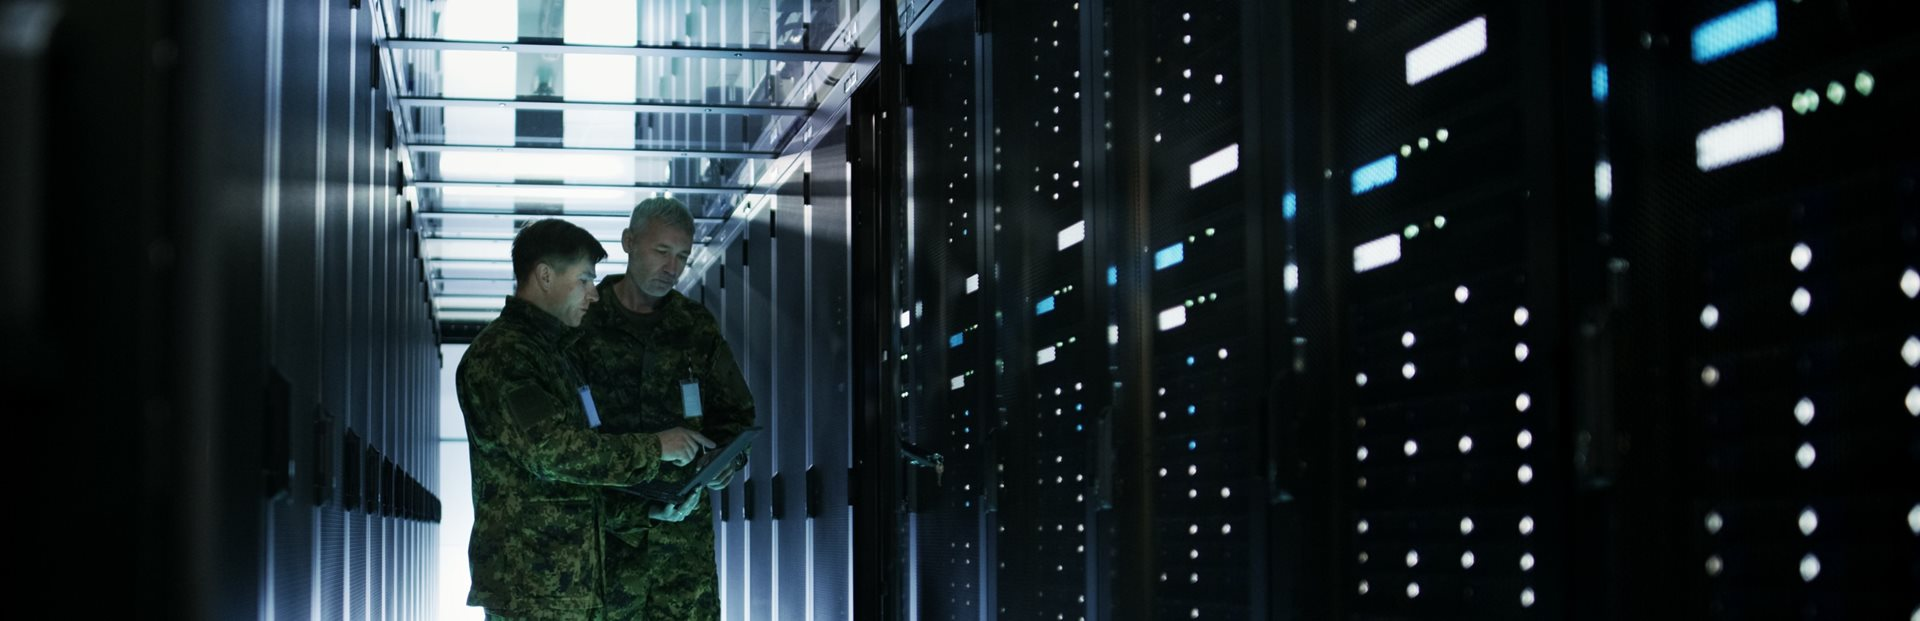 Cyber Resilient Data Security